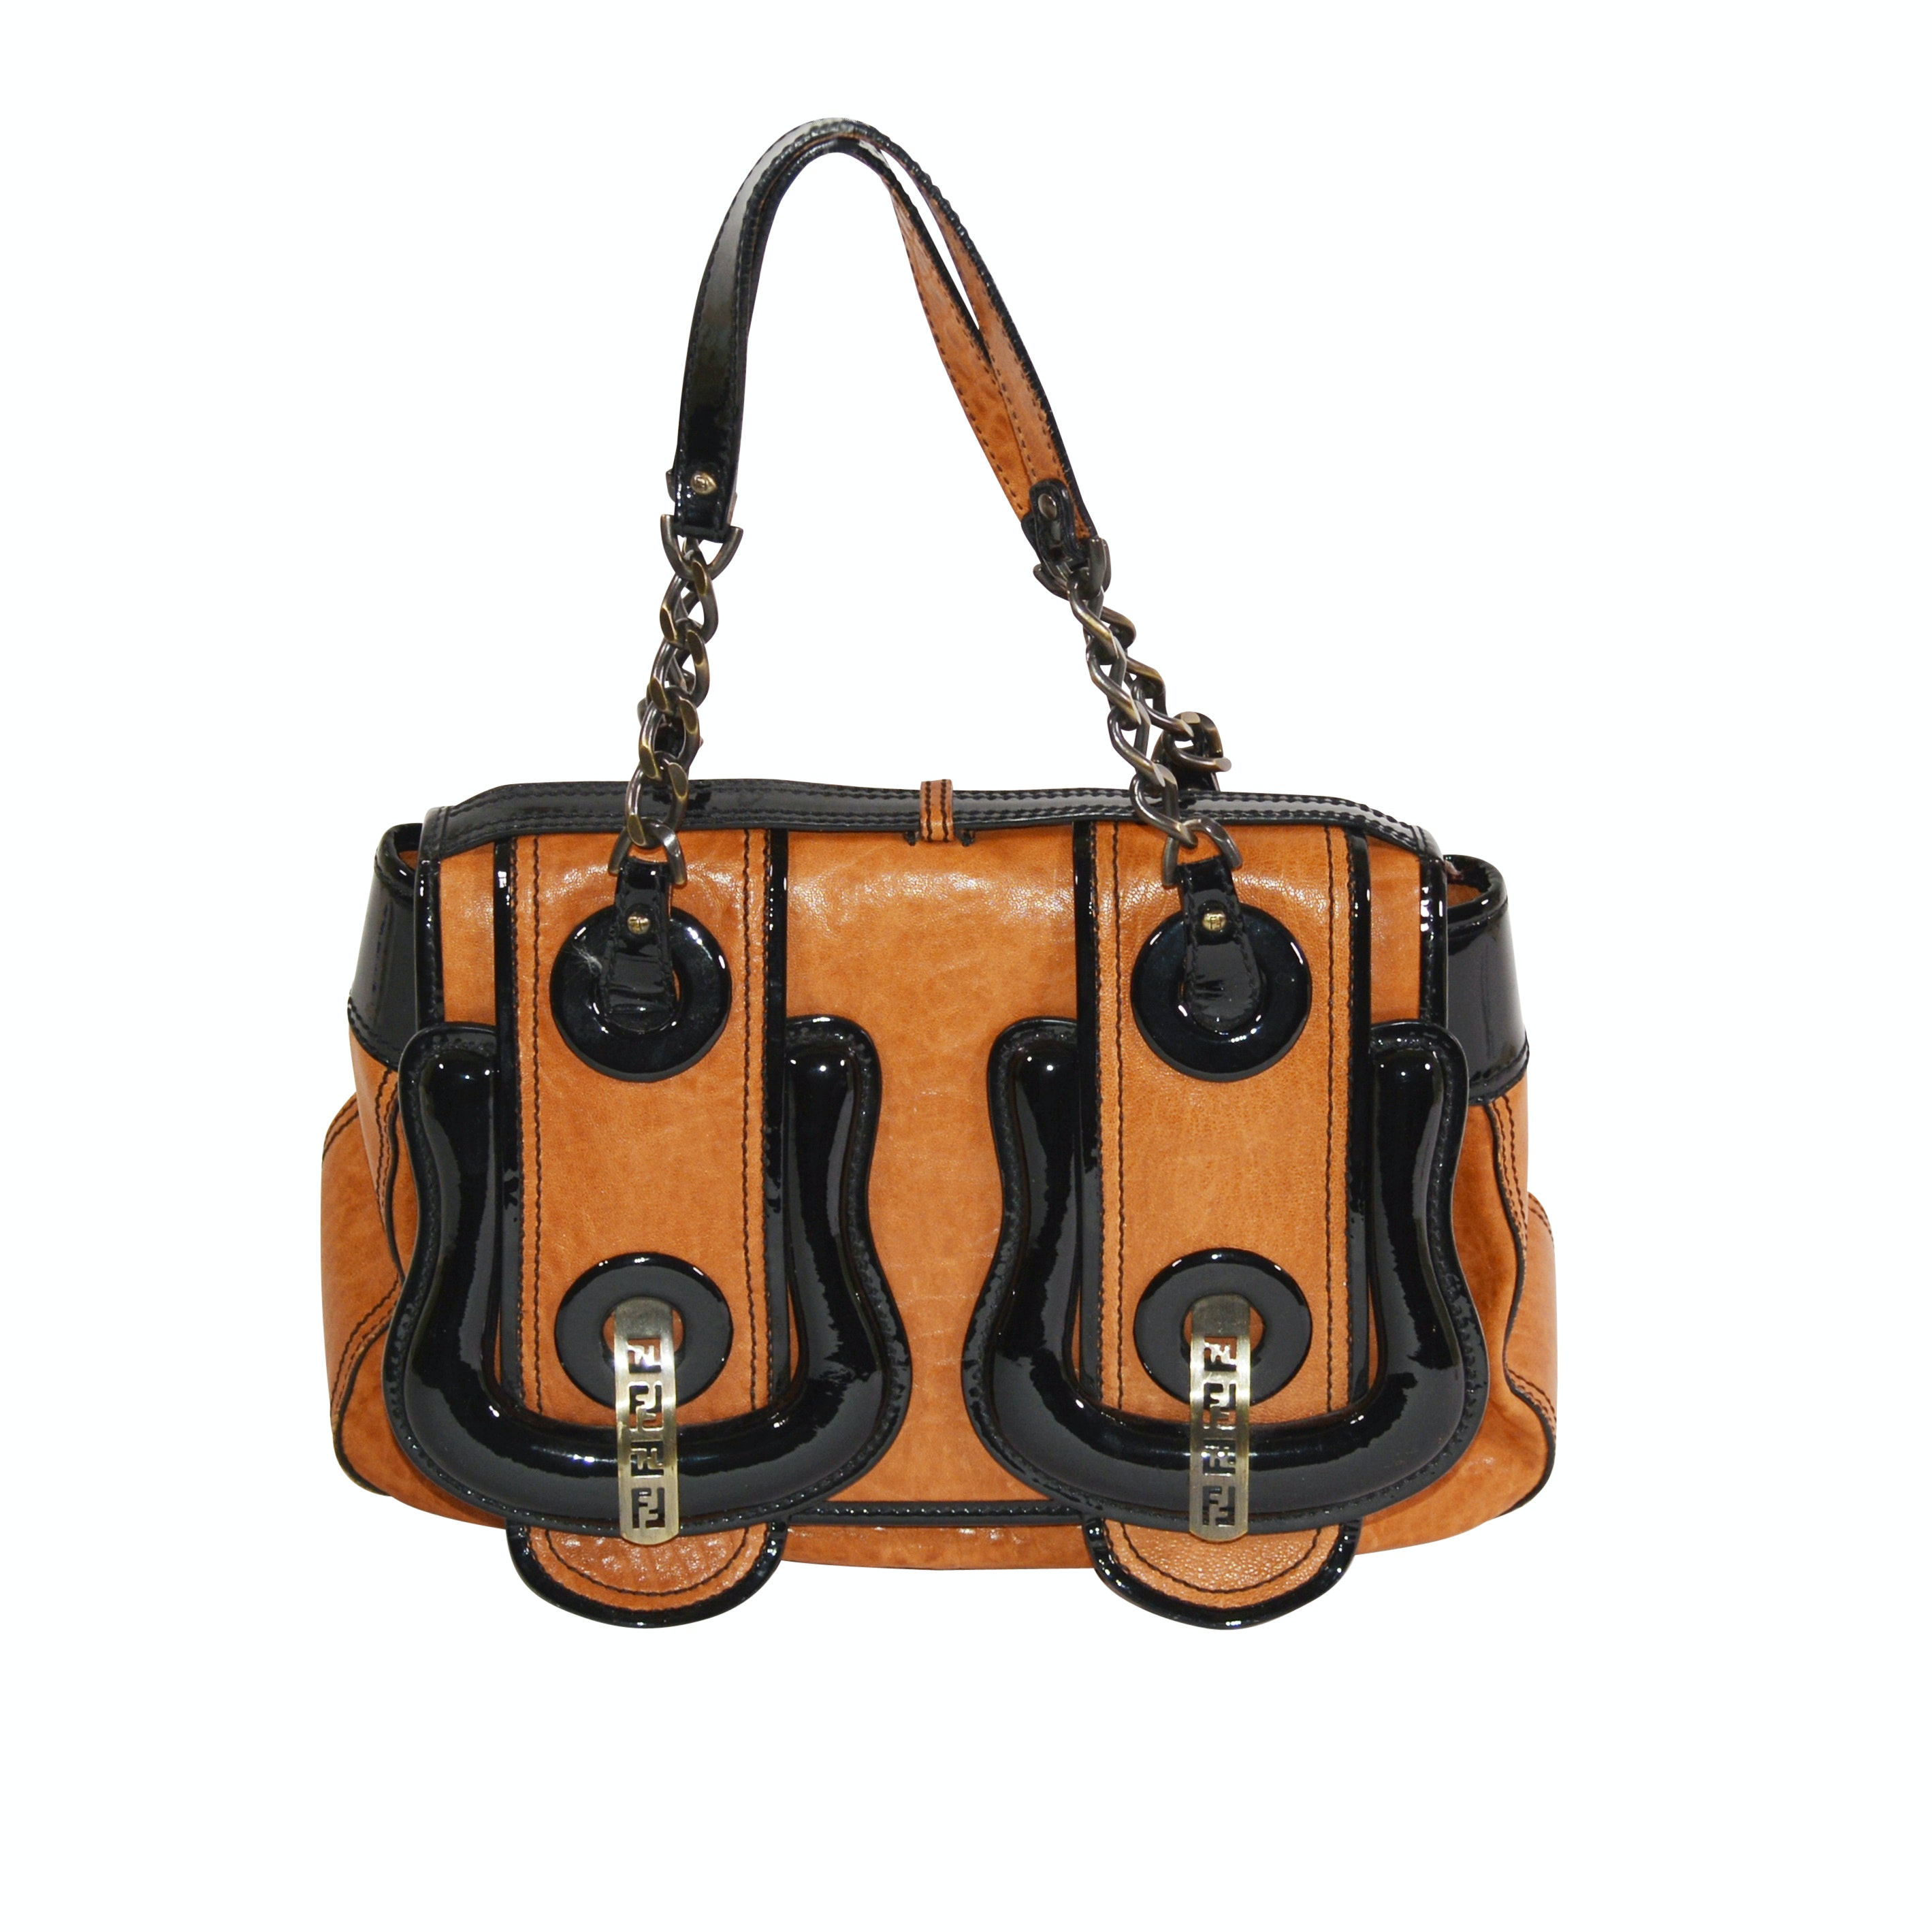 Fendi Cognac and Black Patent Leather Handbag, Made in Italy